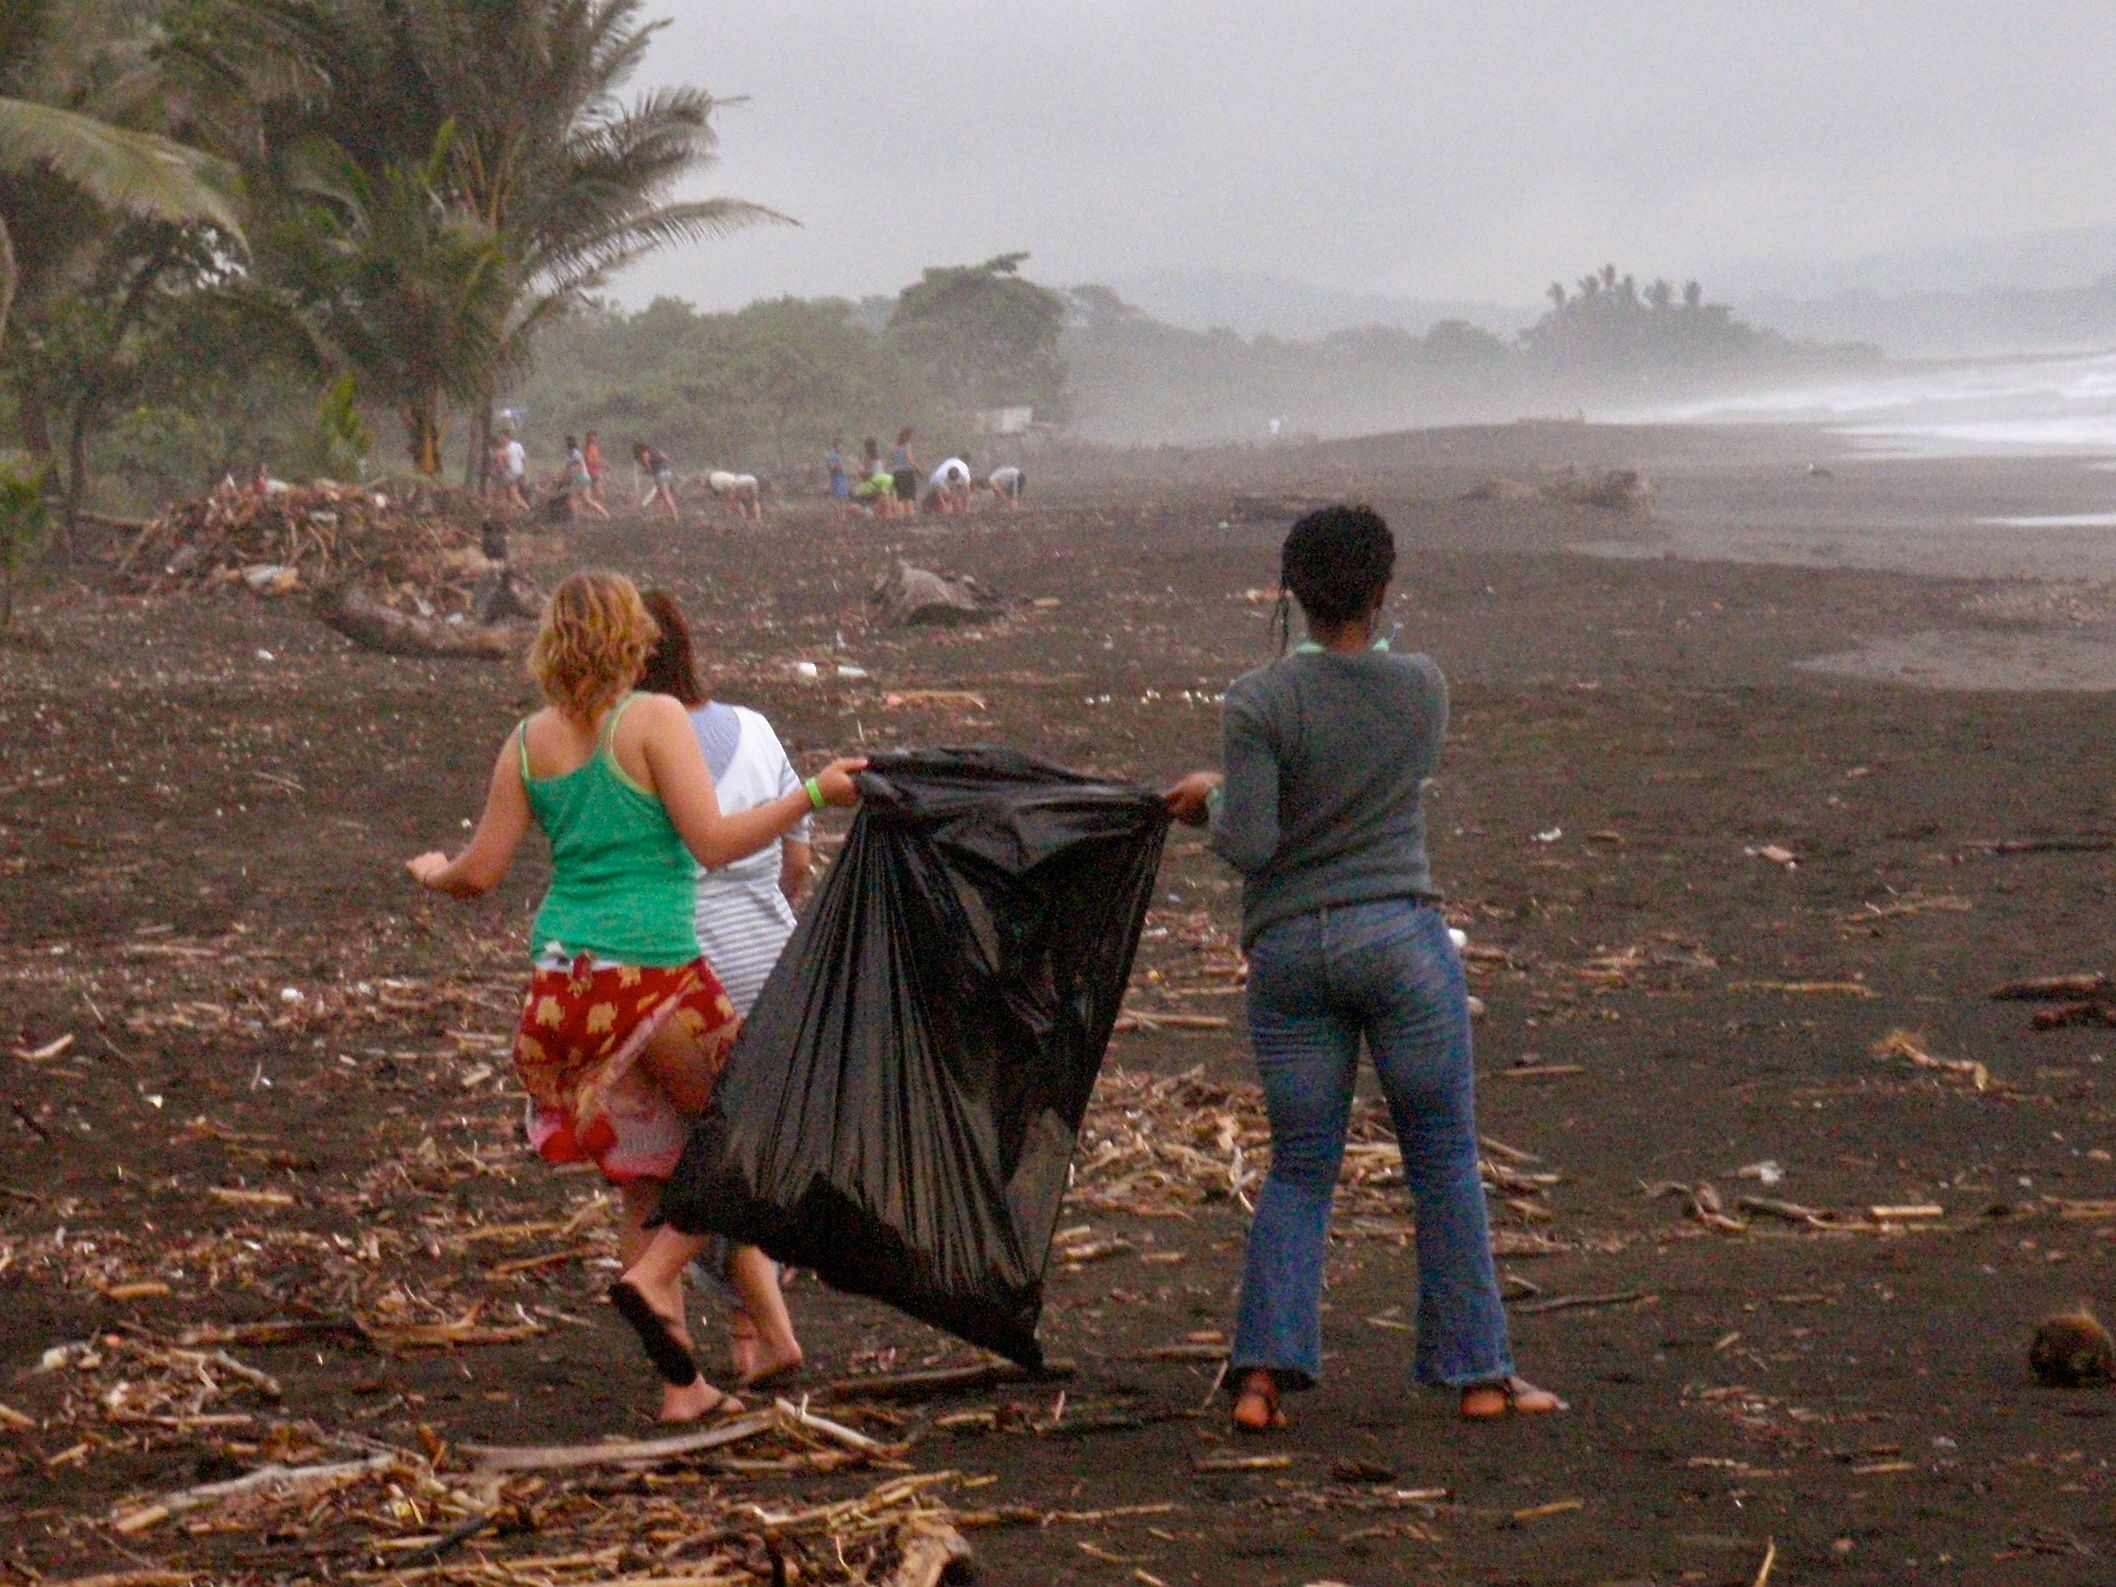 Volunteers collect trash on the beach in Hawaii, U.S.A. © Oceanic Society